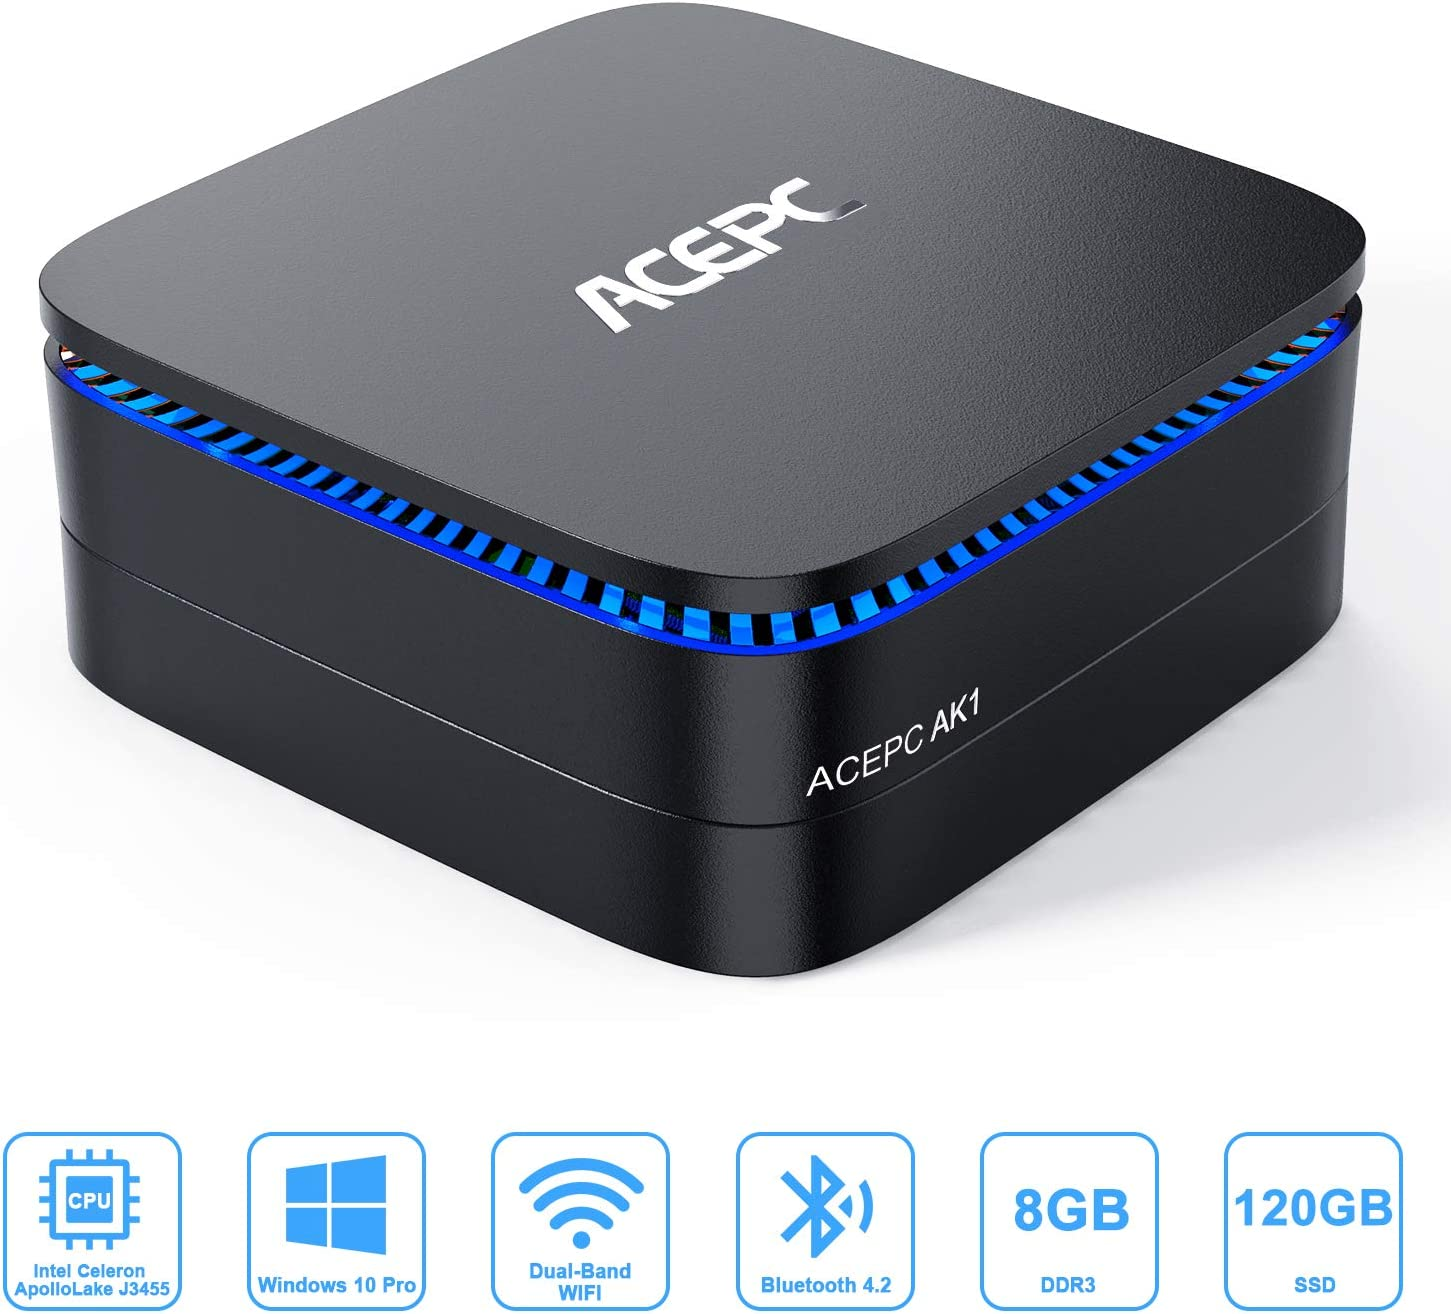 Mini PC, 8GB RAM 120GB ROM Mini Computer Intel Celeron J3455 Processor (up to 2.3GHz) Windows 10 Pro Desktop PC Dual HDMI Output, Support mSATA, 2.5-inch SSD, 4K, 2.4G/ 5.0G WiFi, Gigabit Ethernet